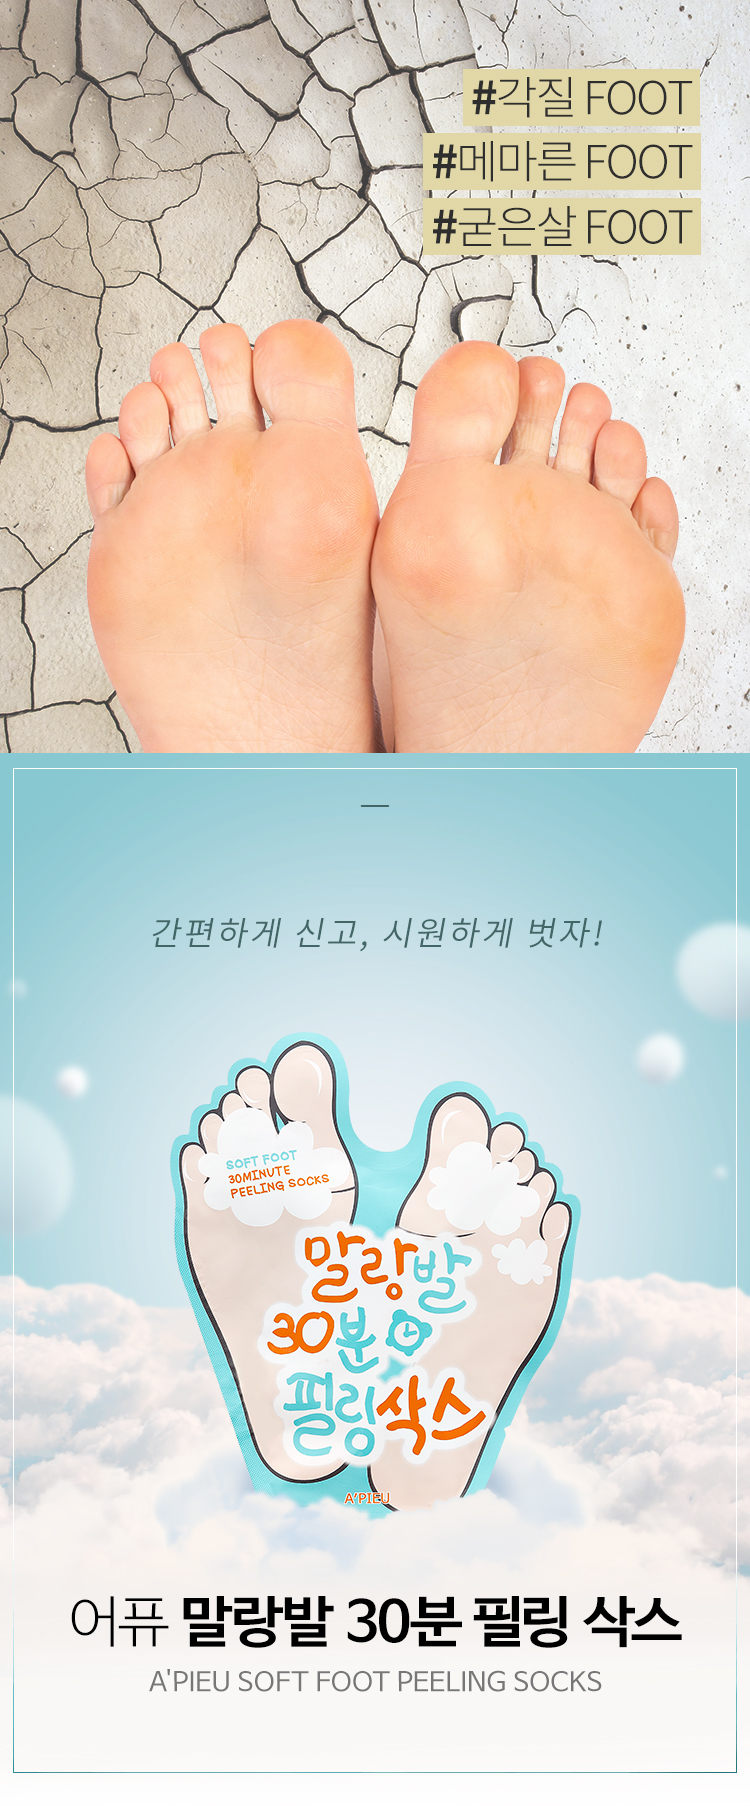 APIEU-SOFT-FOOT-PEELING-SOCKS_01.jpg